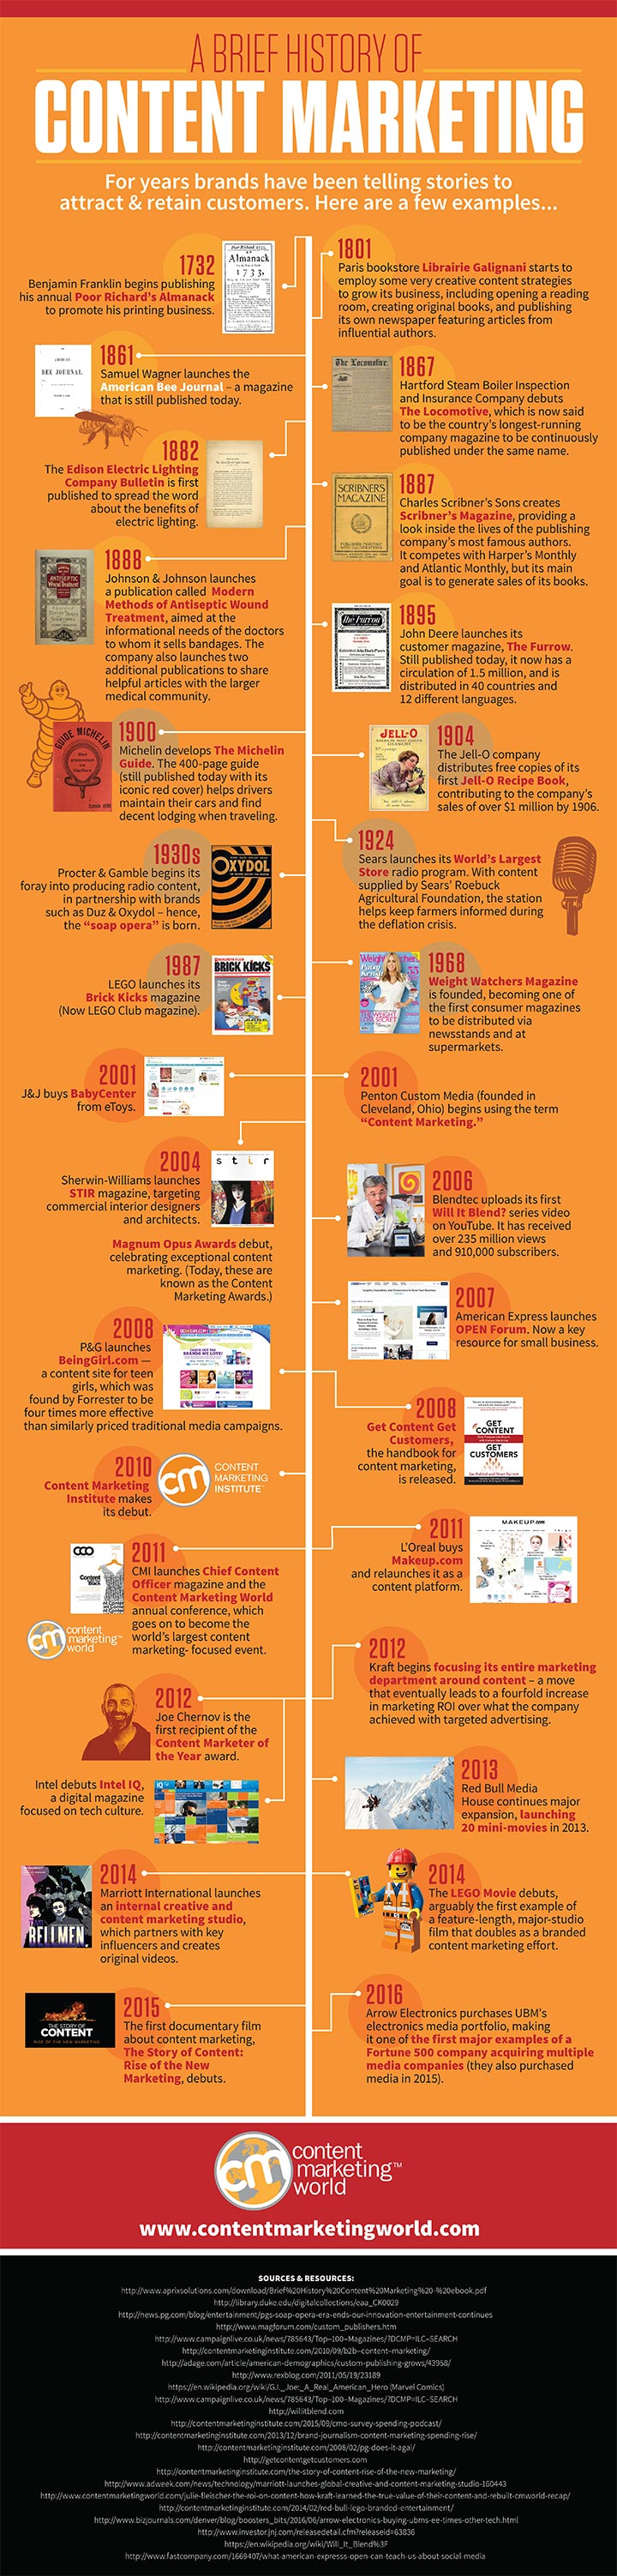 History-of-Content-Marketing-Infographic